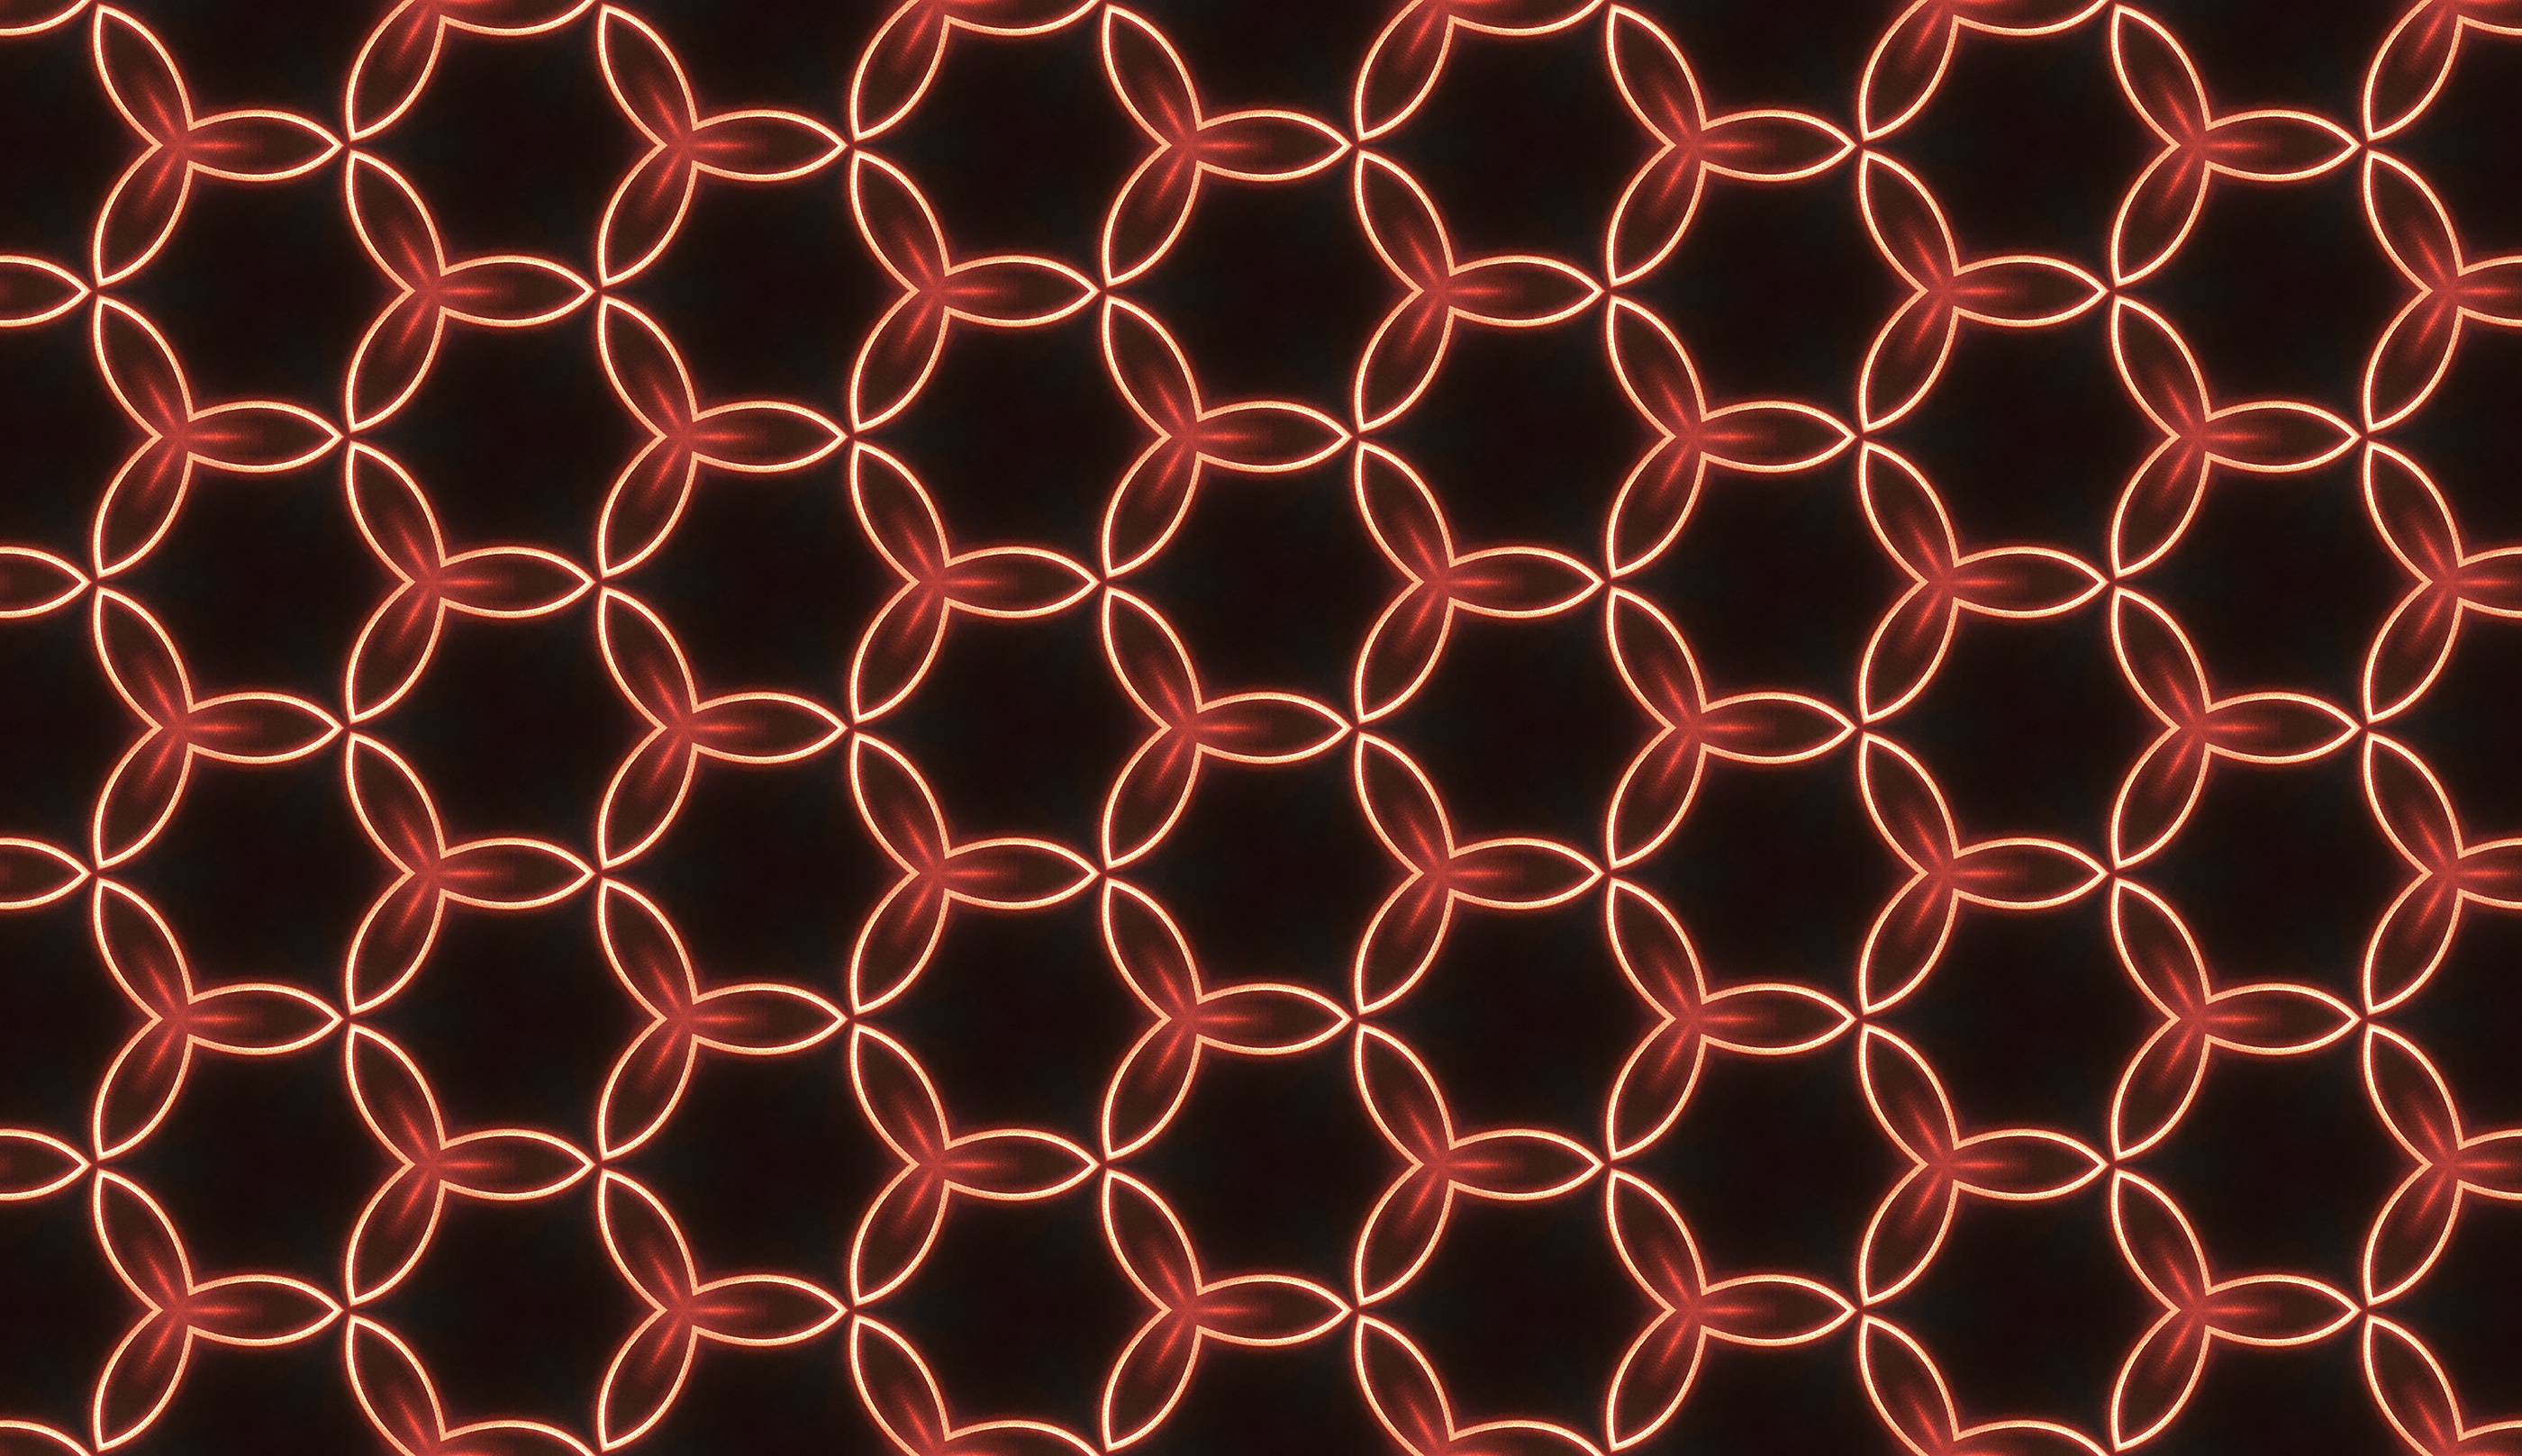 Red Glowing Neon Circles pattern